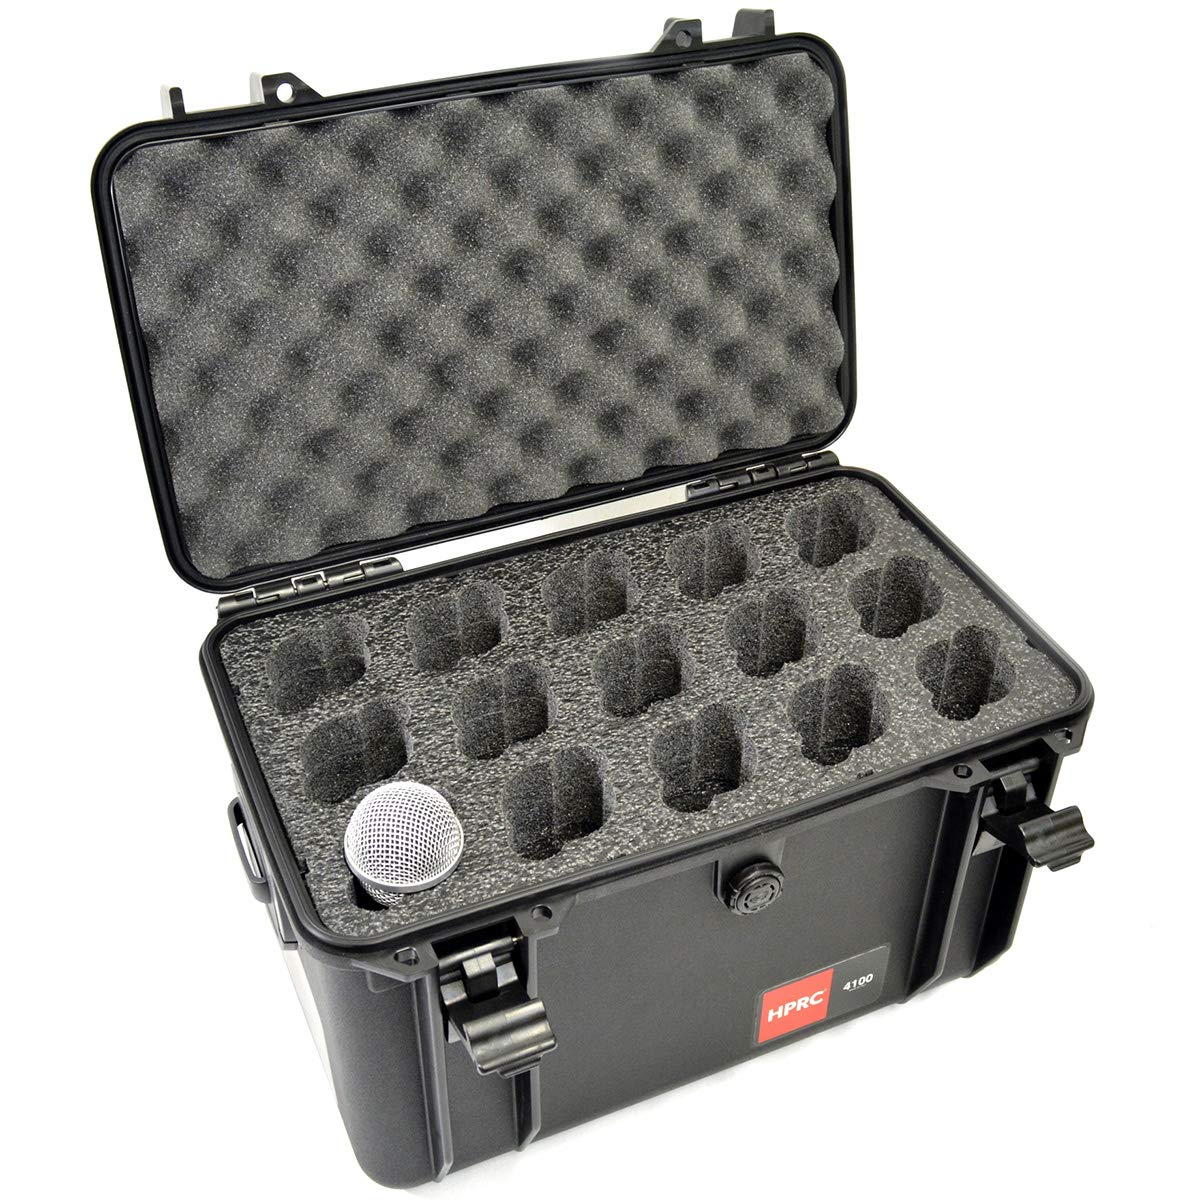 MyCaseBuilder 15 Mic Custom Designed Padded Foam Insert HPRC 4100 Carrying Case - Lightweight Waterproof Crushproof Hard Case with Foam Fits 15 Microphones for Safe Travel, Storage & Transportation